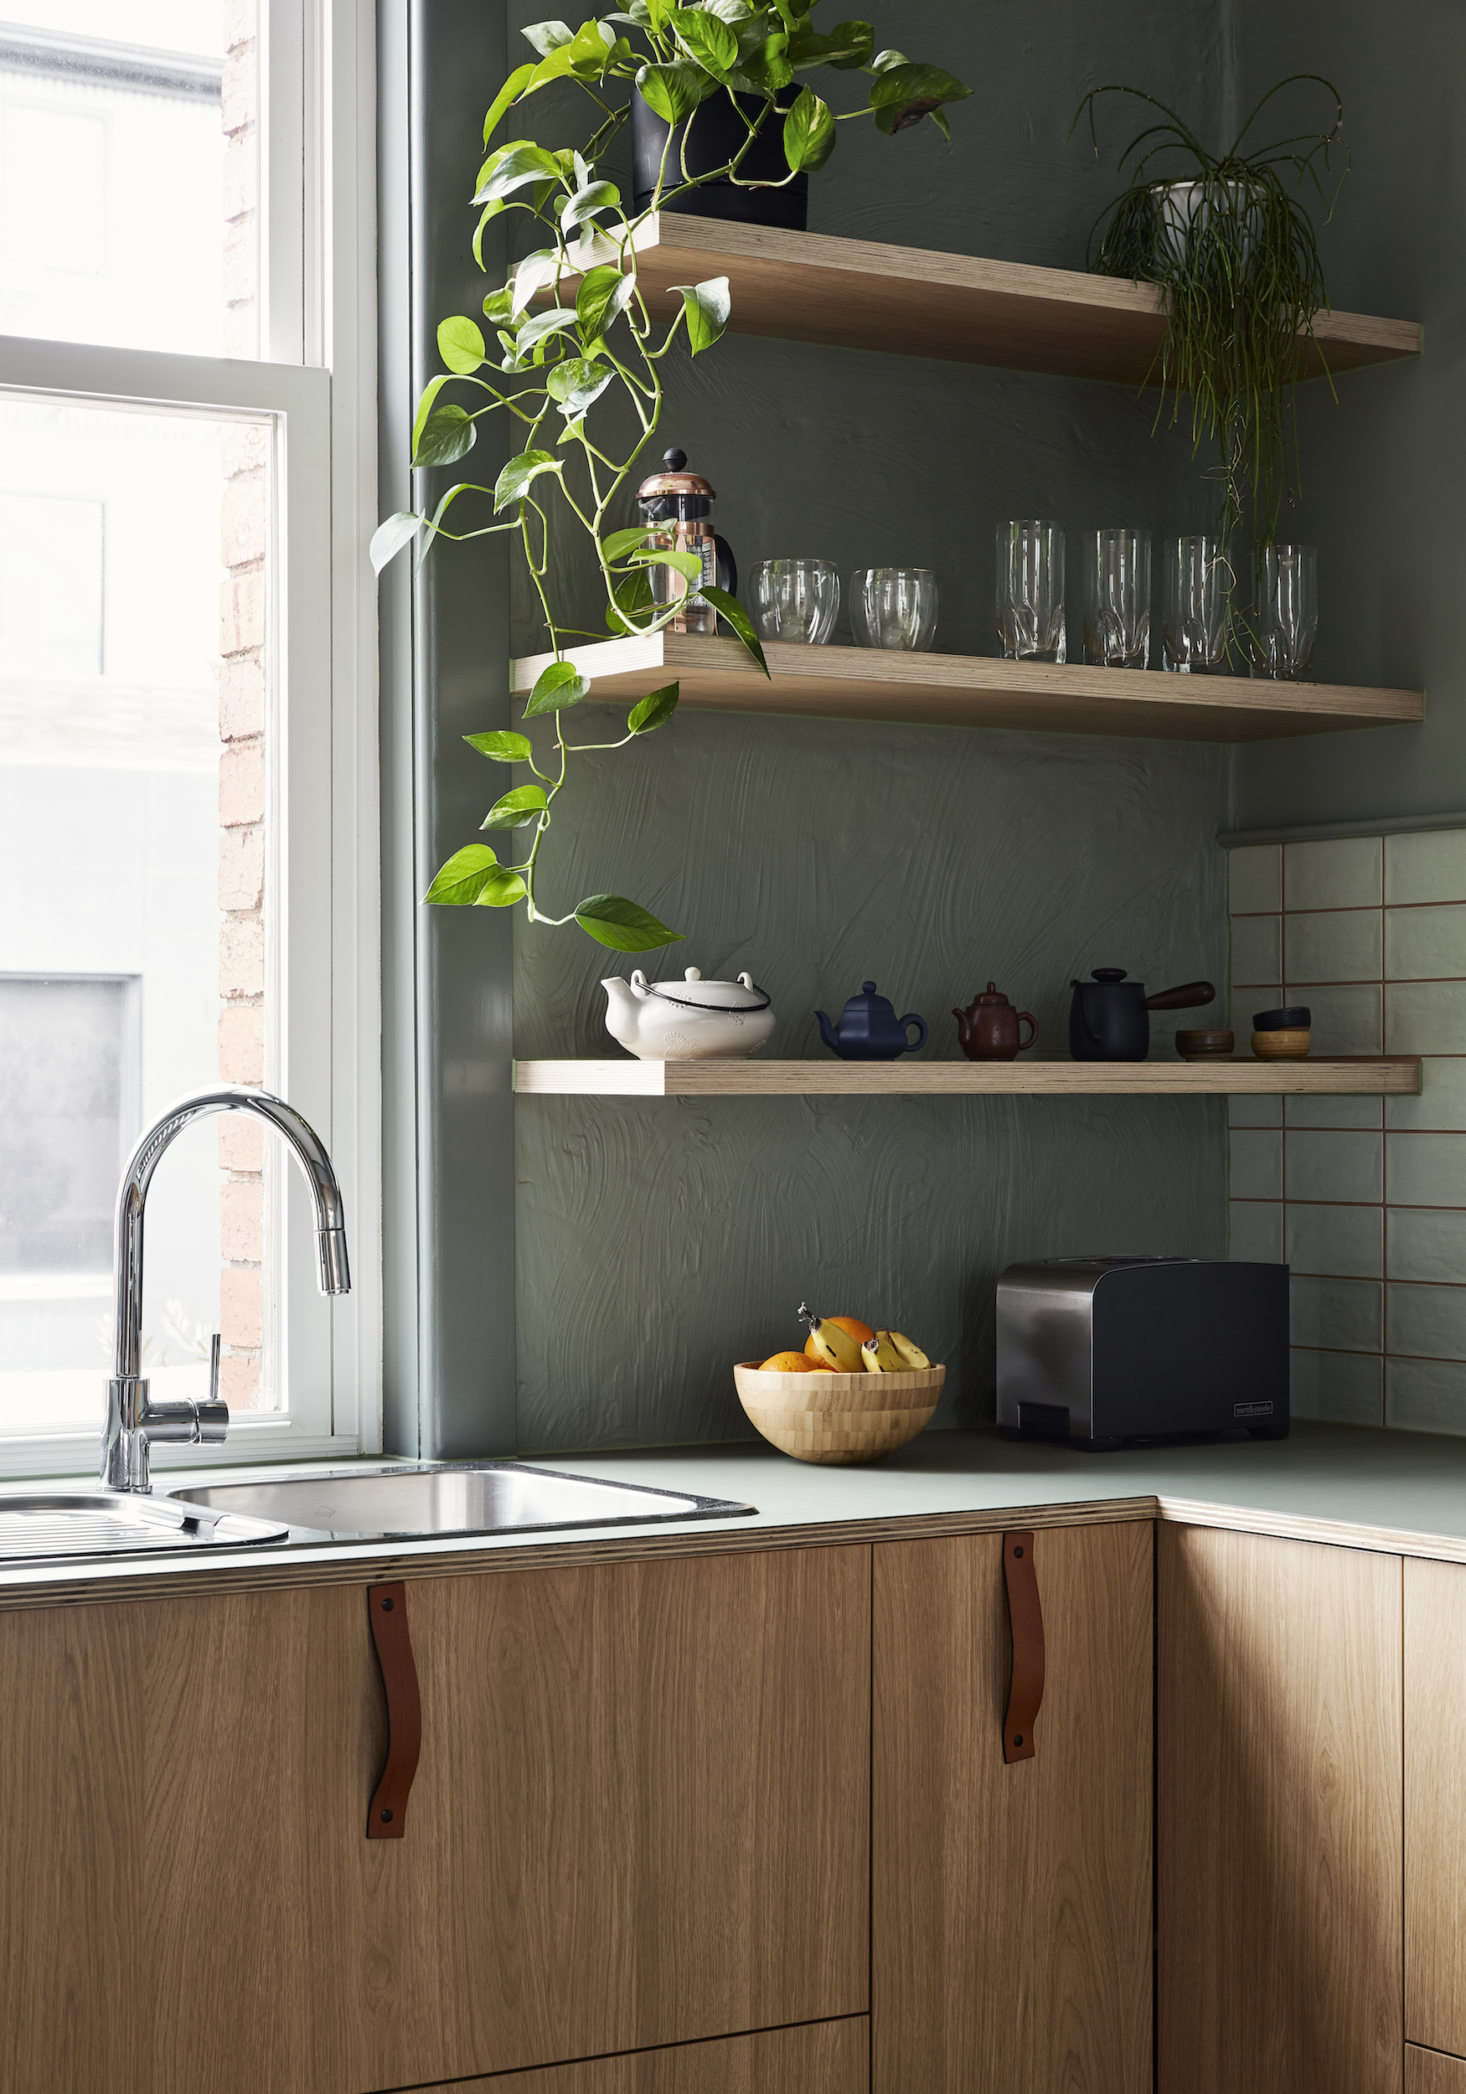 The faucet is from Methven. (For similar faucets, see  Easy Pieces: Modern Single-Lever Gooseneck Kitchen Faucets.) The leather handles are from Melbourne-based company Made to Measure.